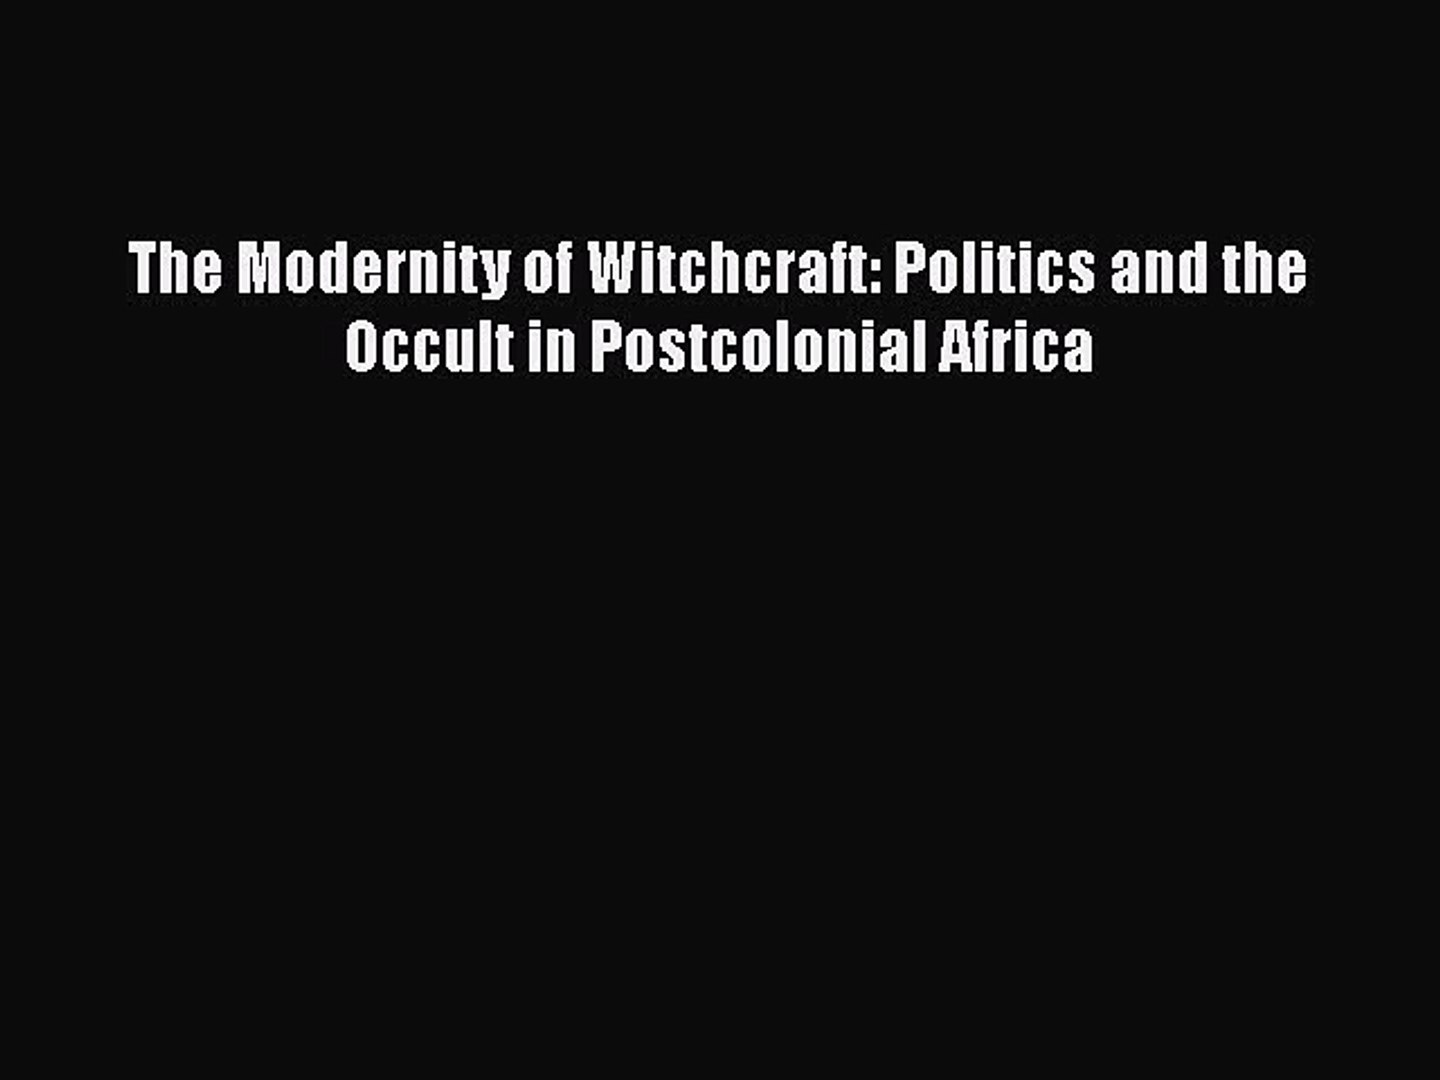 [Read Book] The Modernity of Witchcraft: Politics and the Occult in Postcolonial Africa  Read